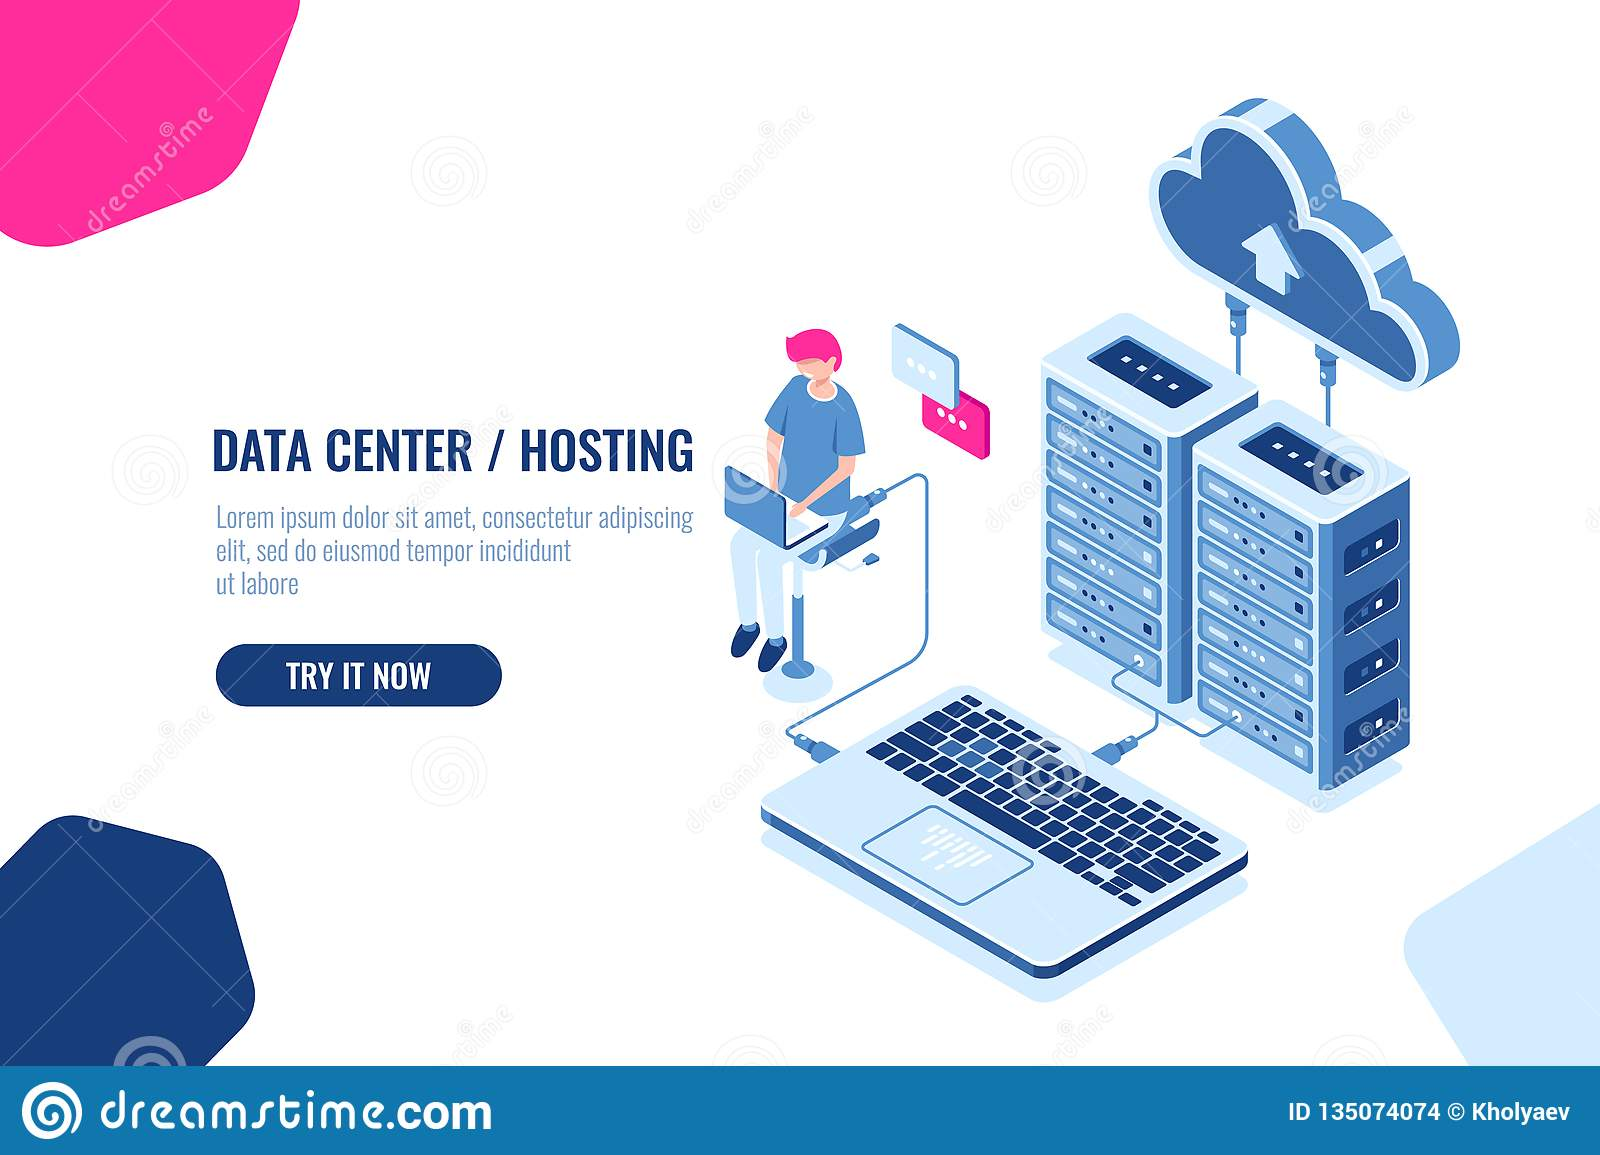 Data calculation and auditing isometric, engineer working with cloud storage, server room, datacenter and database icon